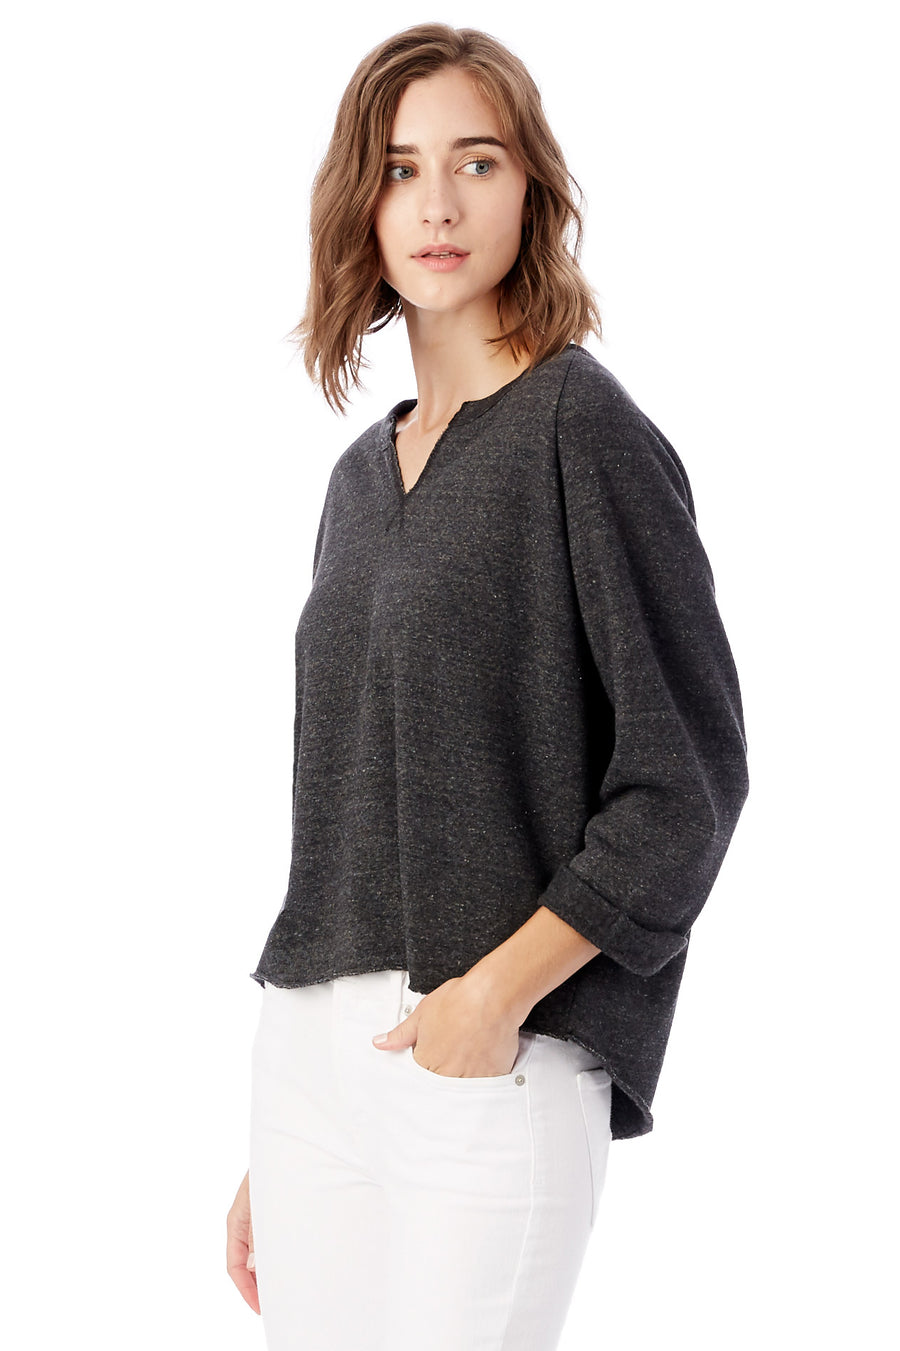 The Champ Remix Eco-Fleece Sweatshirt - Eco Black - Pavilion